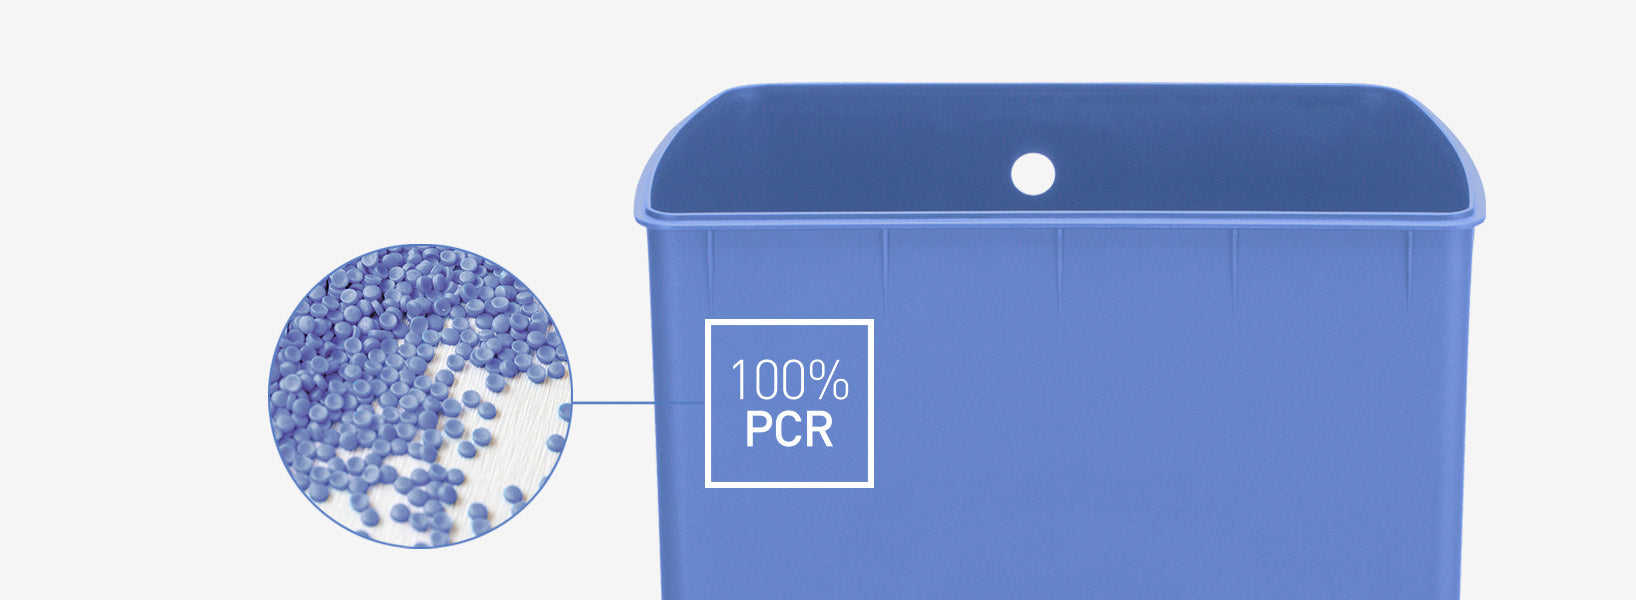 100% post-consumer recycled plastic